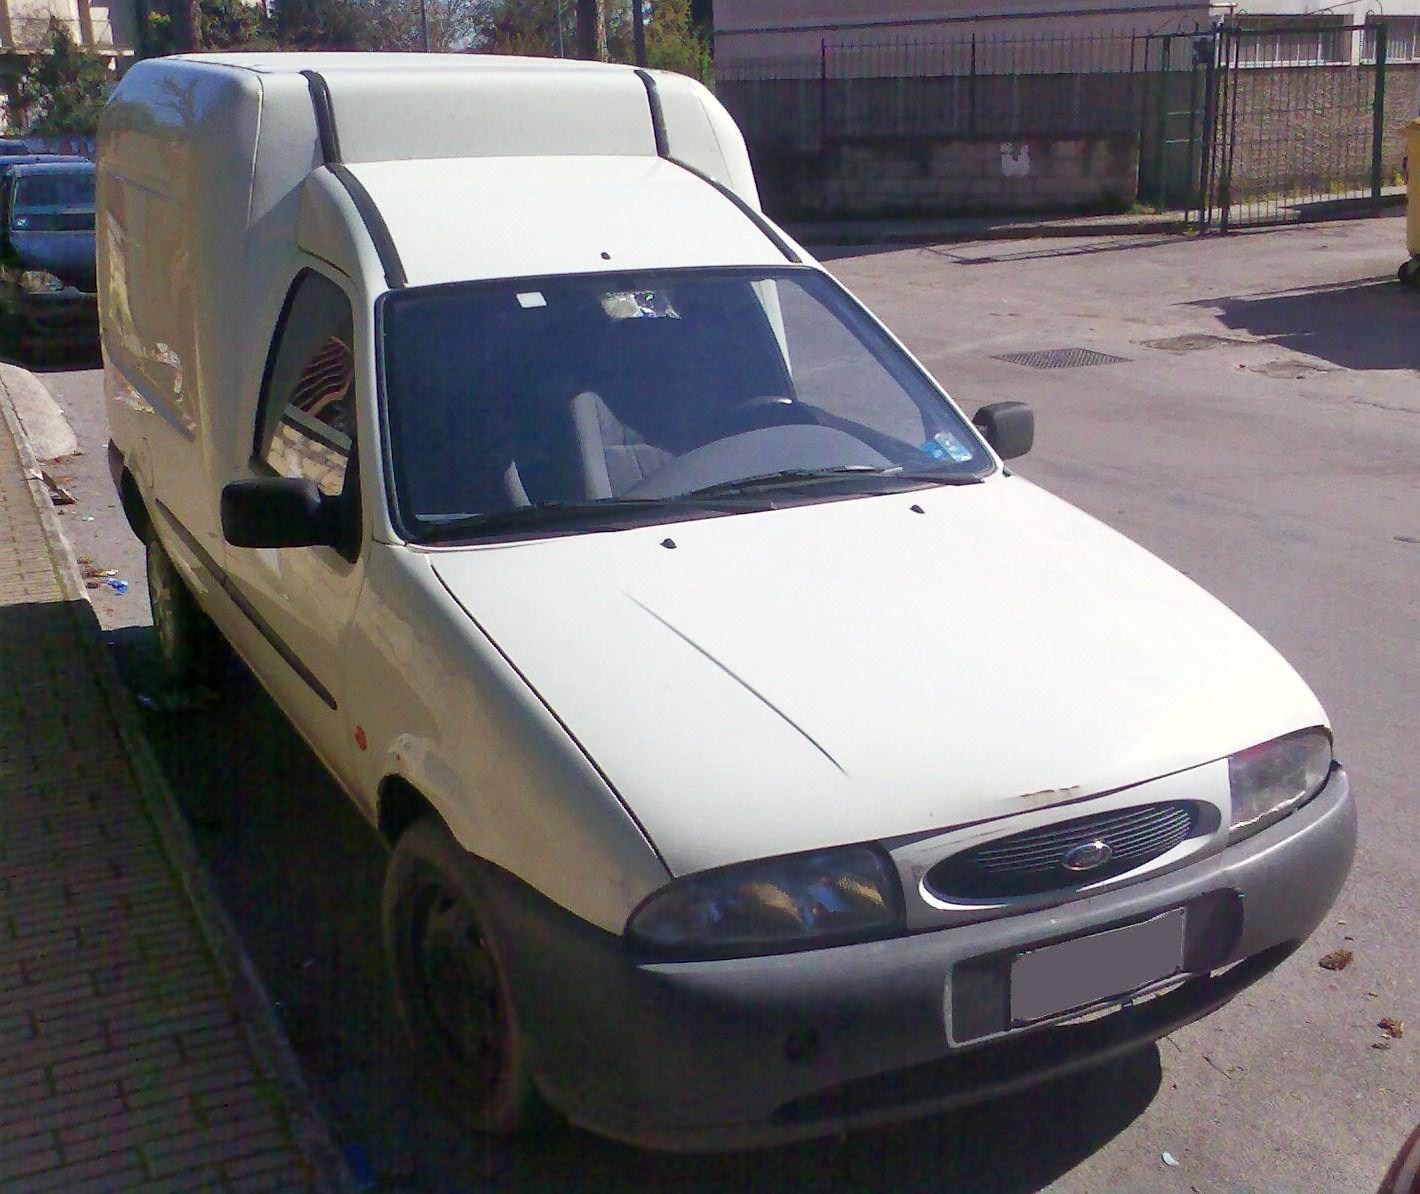 file ford courier fiesta based jpg wikimedia commons. Black Bedroom Furniture Sets. Home Design Ideas